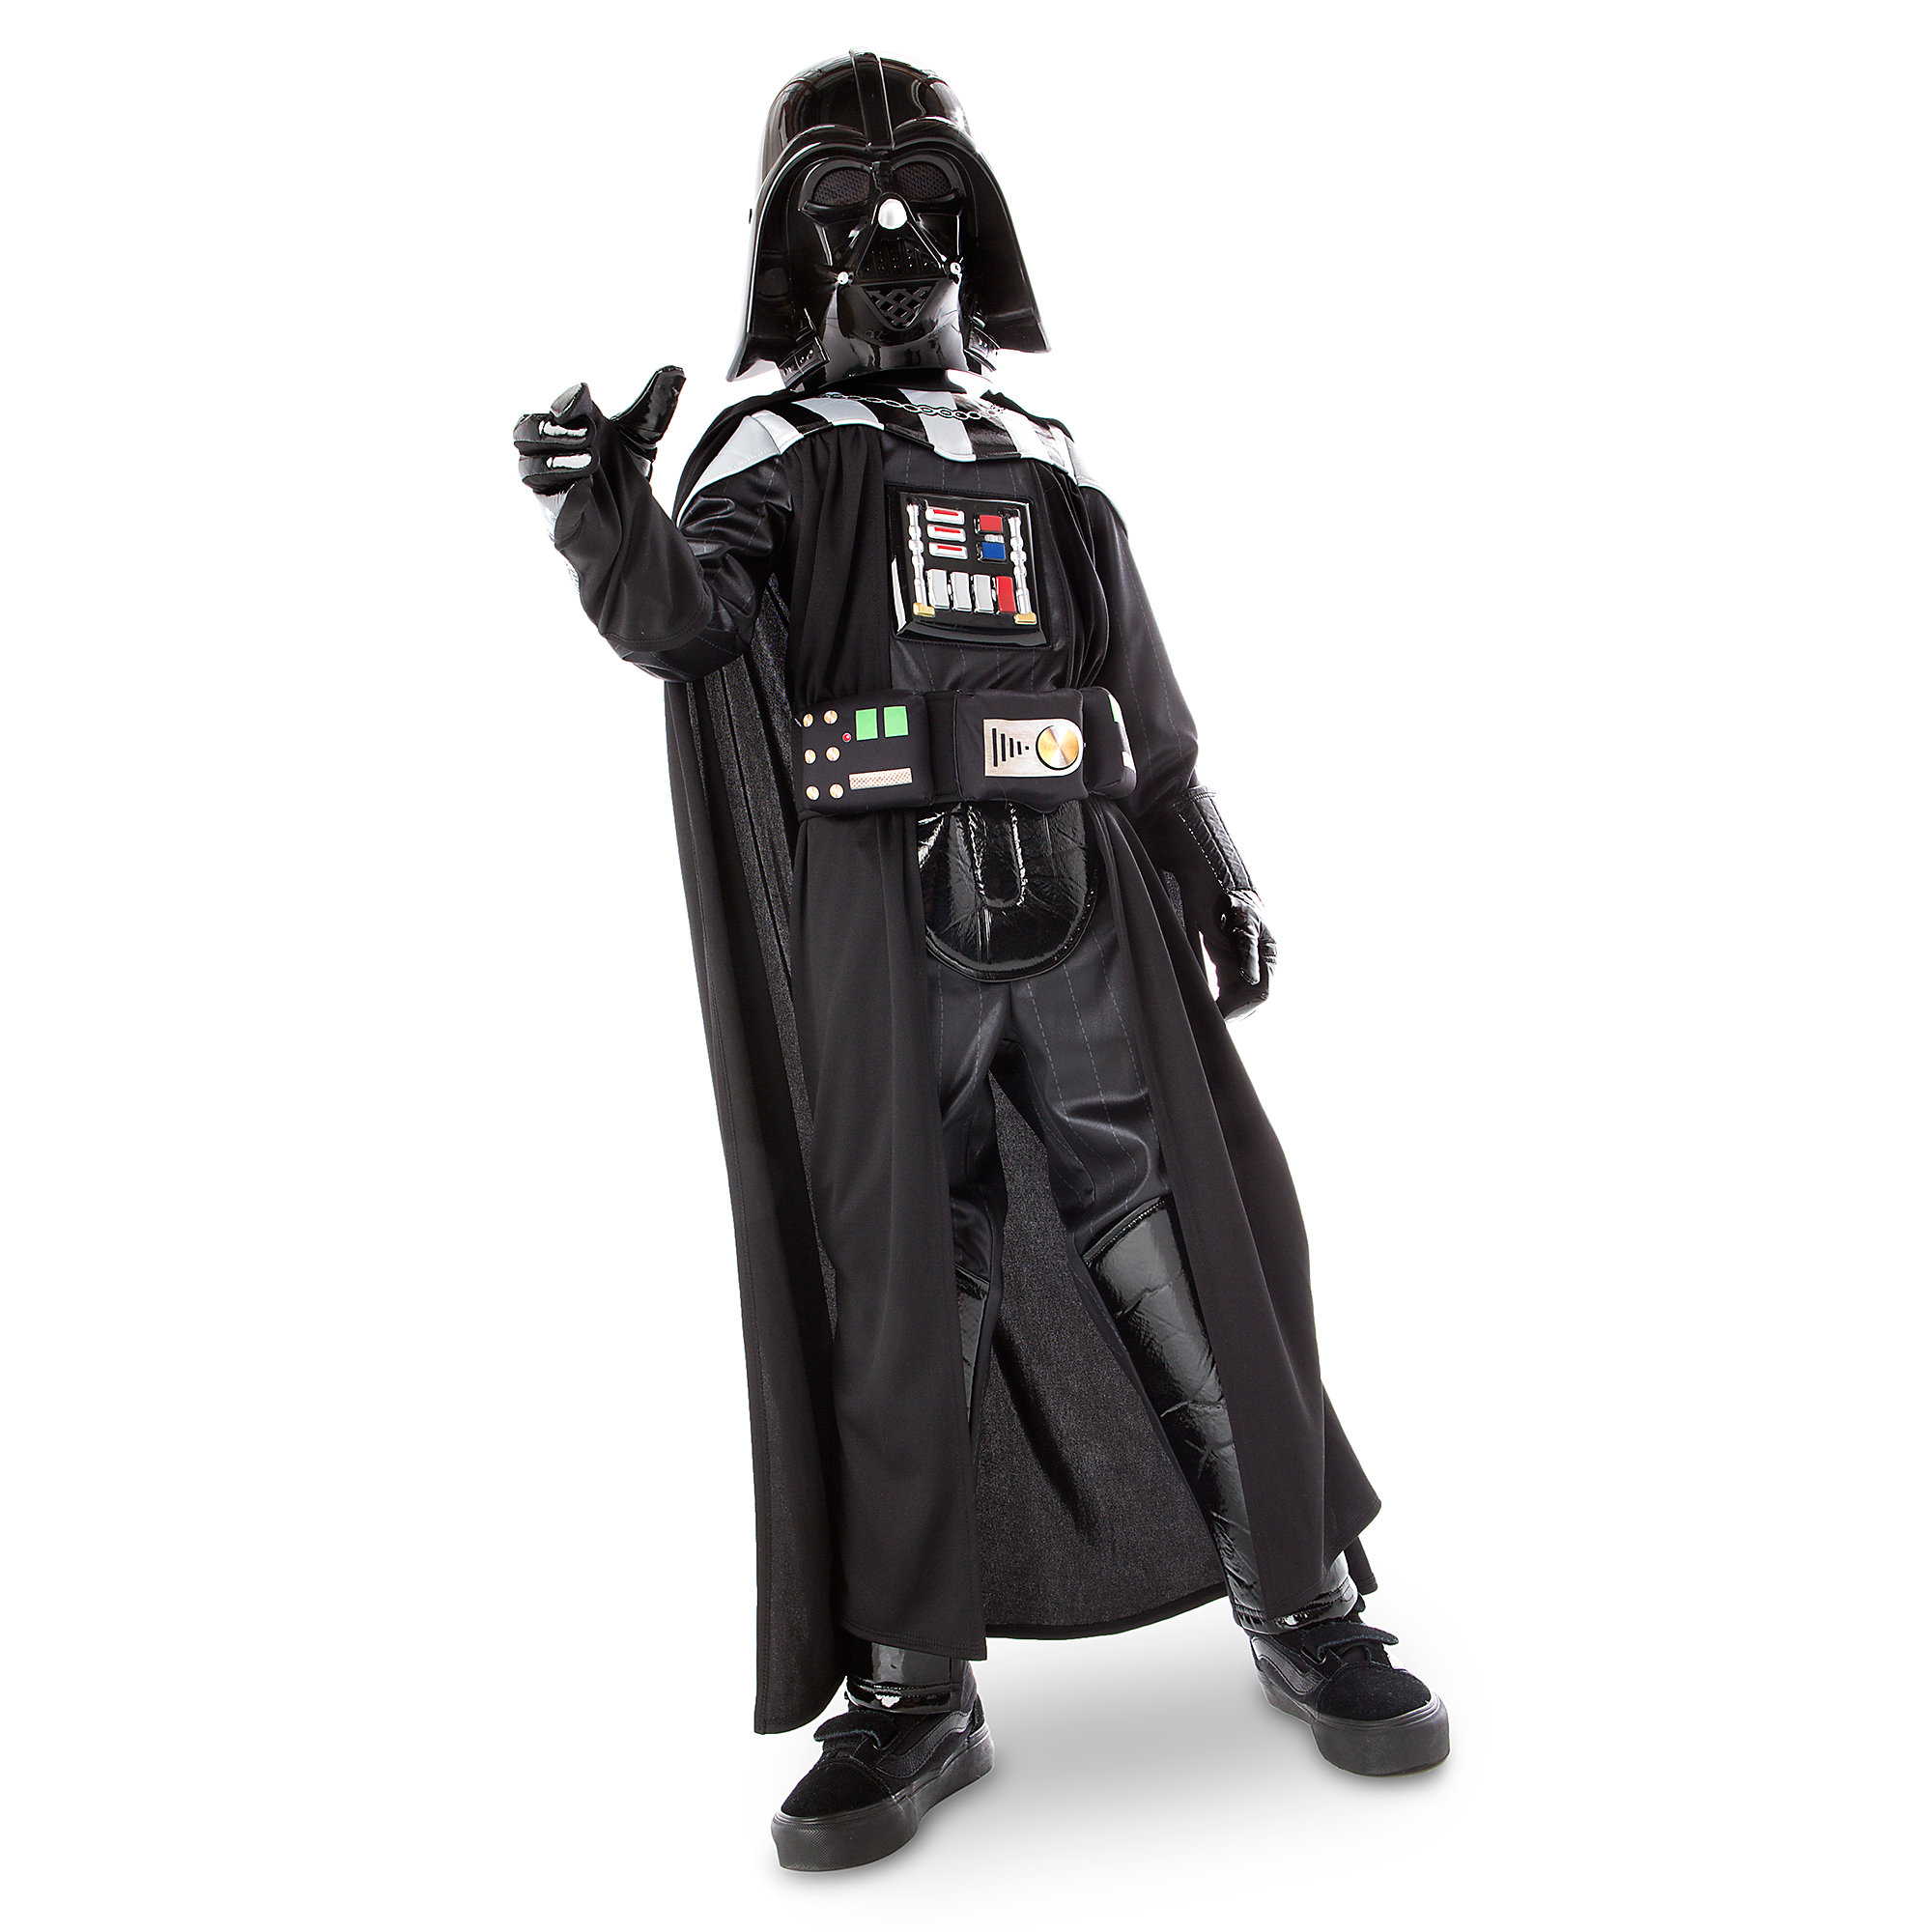 Thumbnail Image of Darth Vader Costume with Sound for Kids # 1  sc 1 st  shopDisney & Darth Vader Costume with Sound for Kids | shopDisney